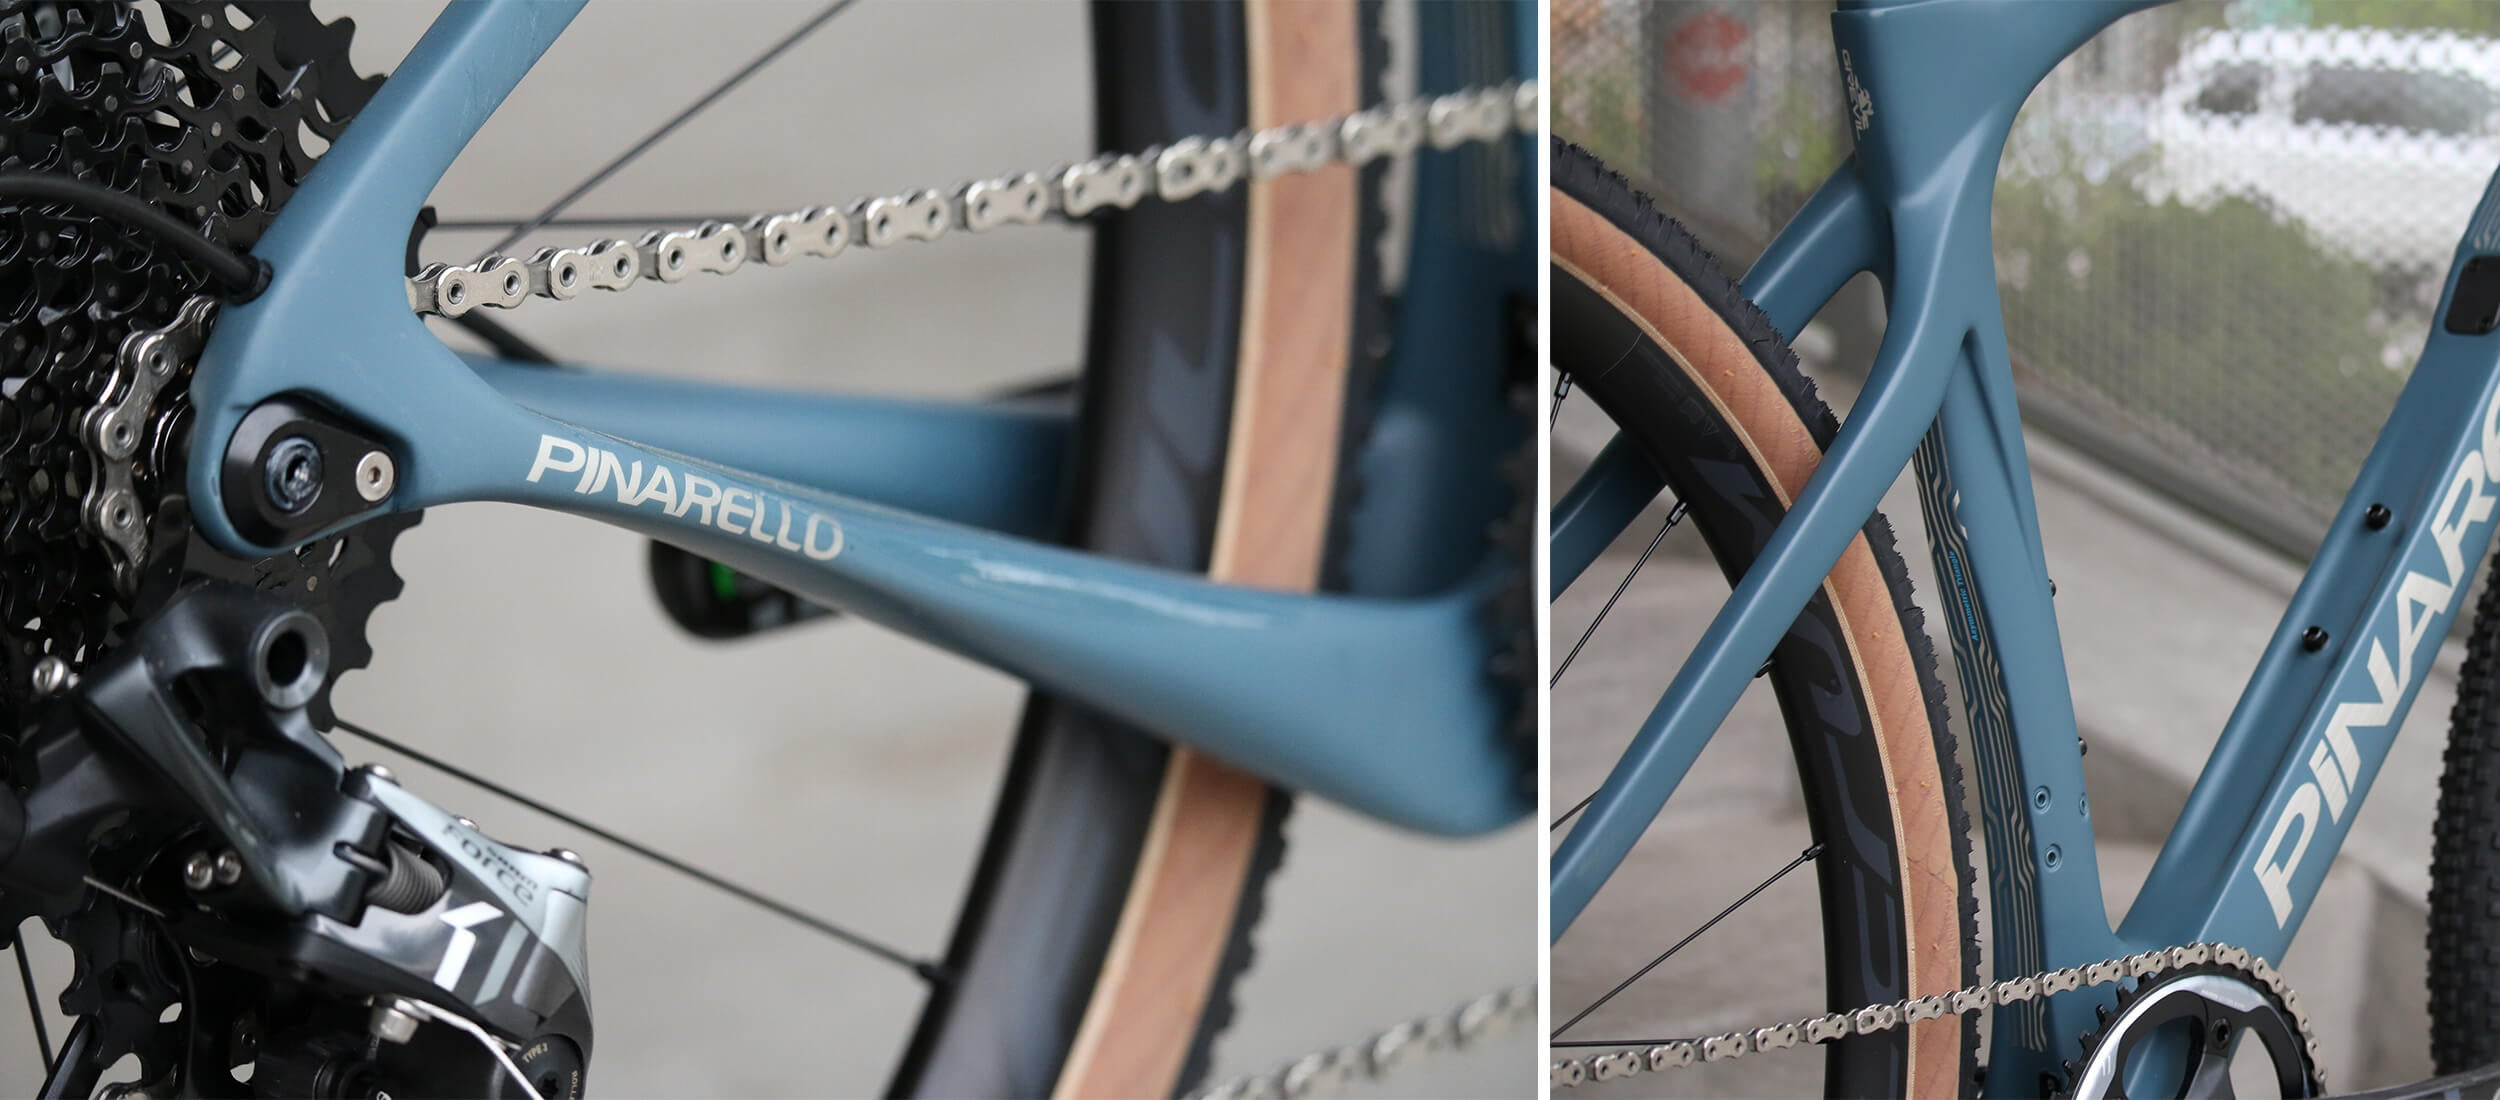 2019 Pinarello Grevil - Dropped Chain Stay - Contender Bicycles